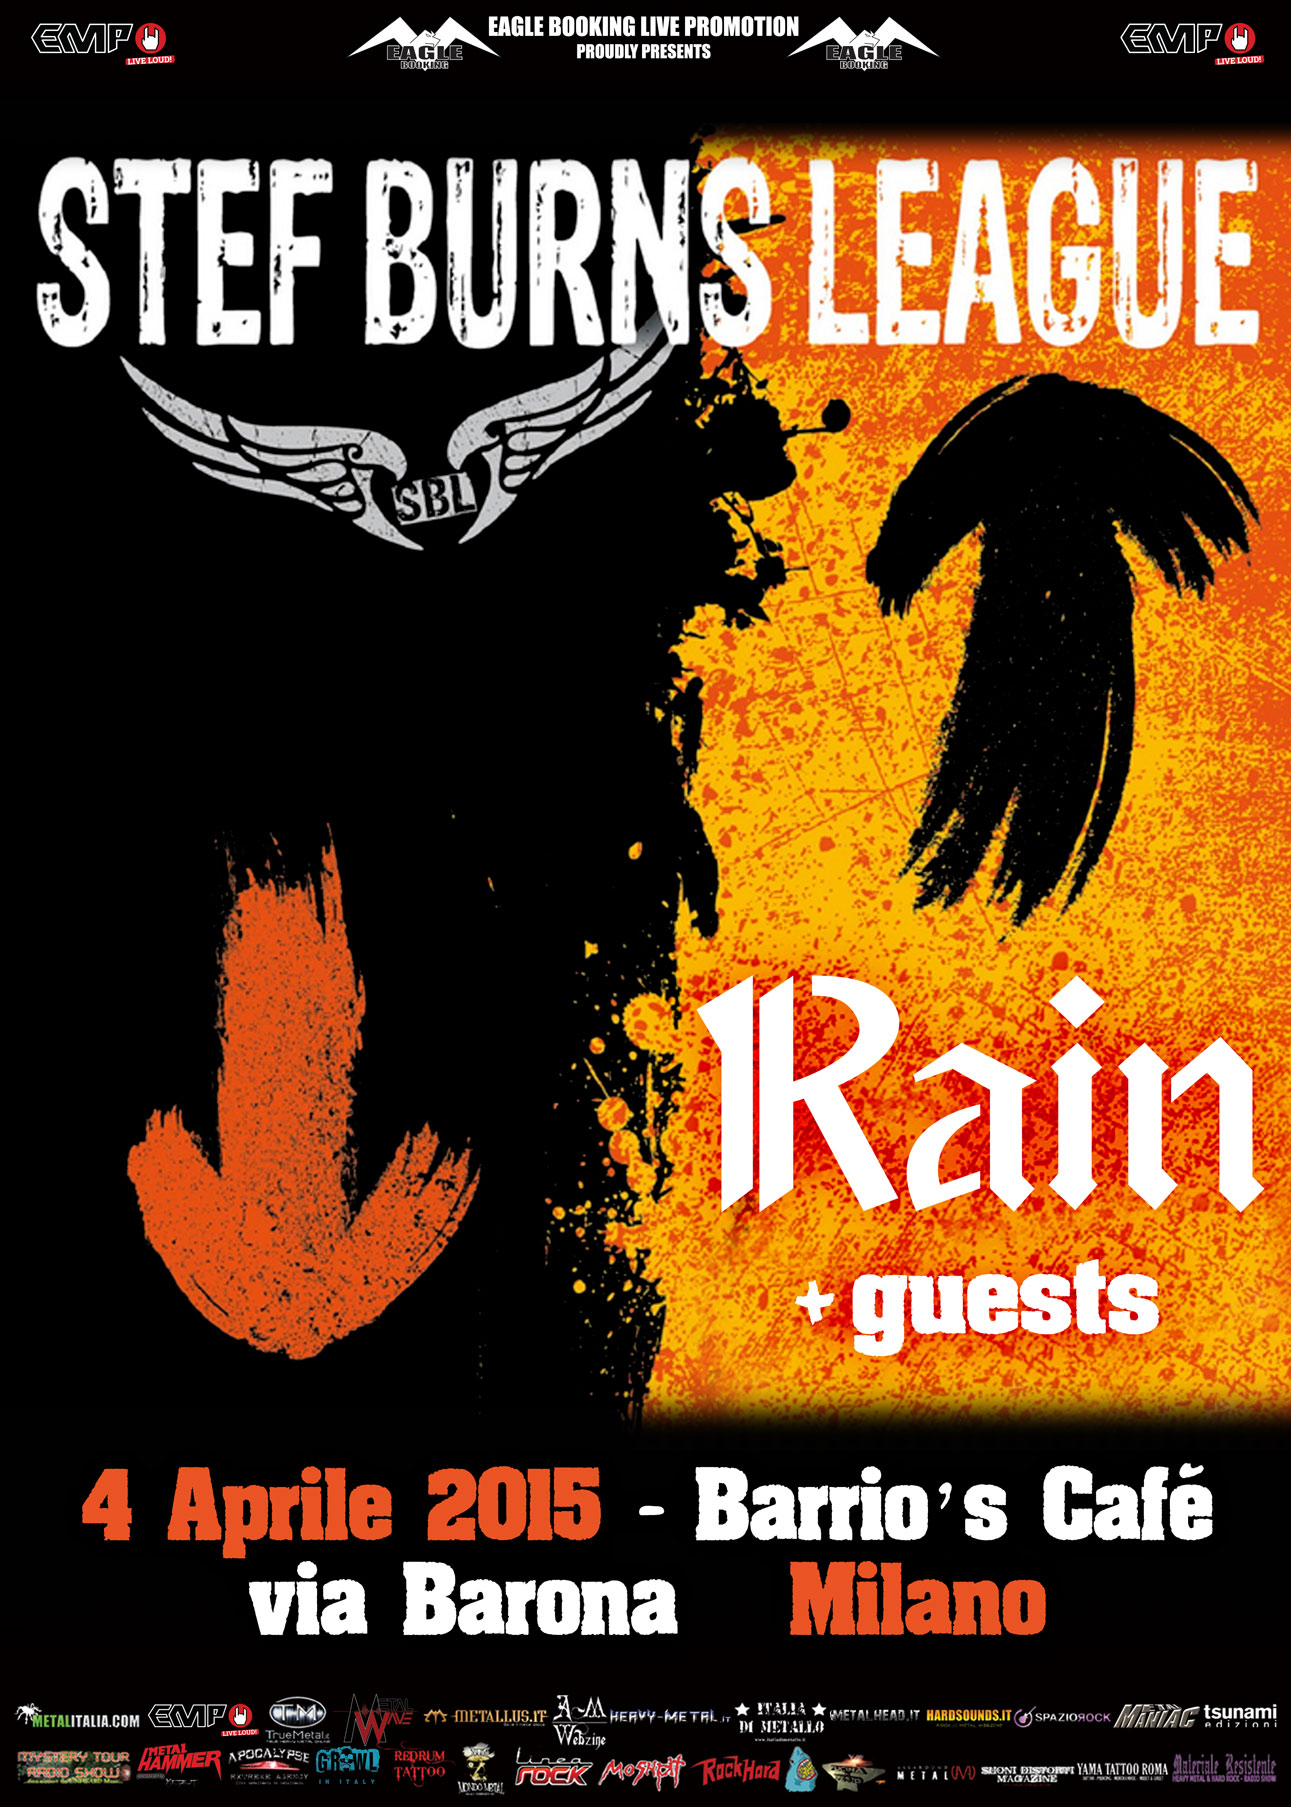 Vasco Live Kom 2015 Date Stef Burns Data Live Al Barrios Di Milano